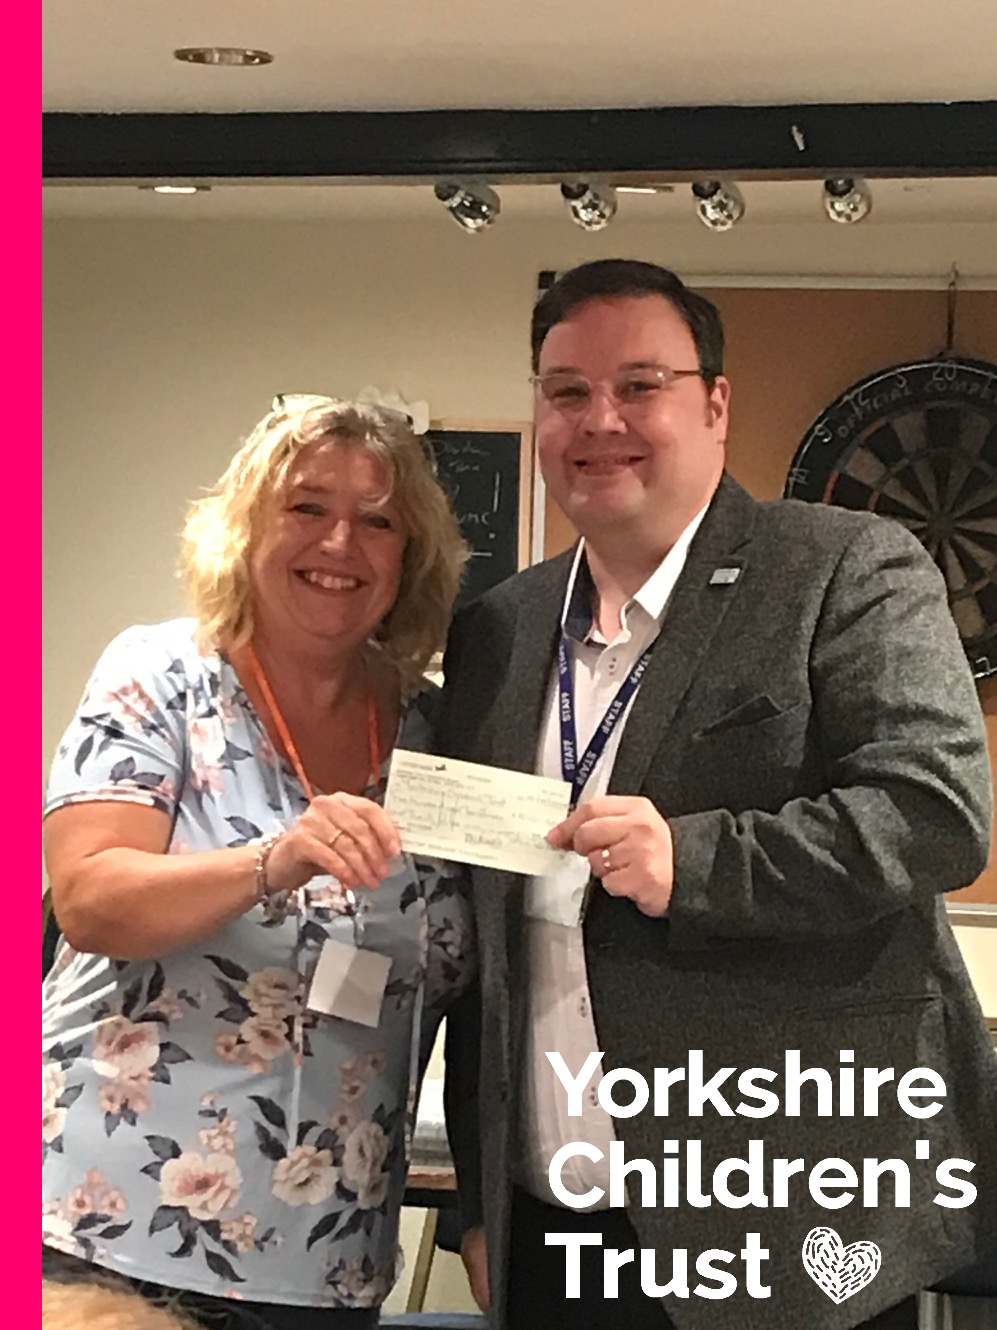 Norland WI supporting Yorkshire Children's Trust, a local charity, helping local children.